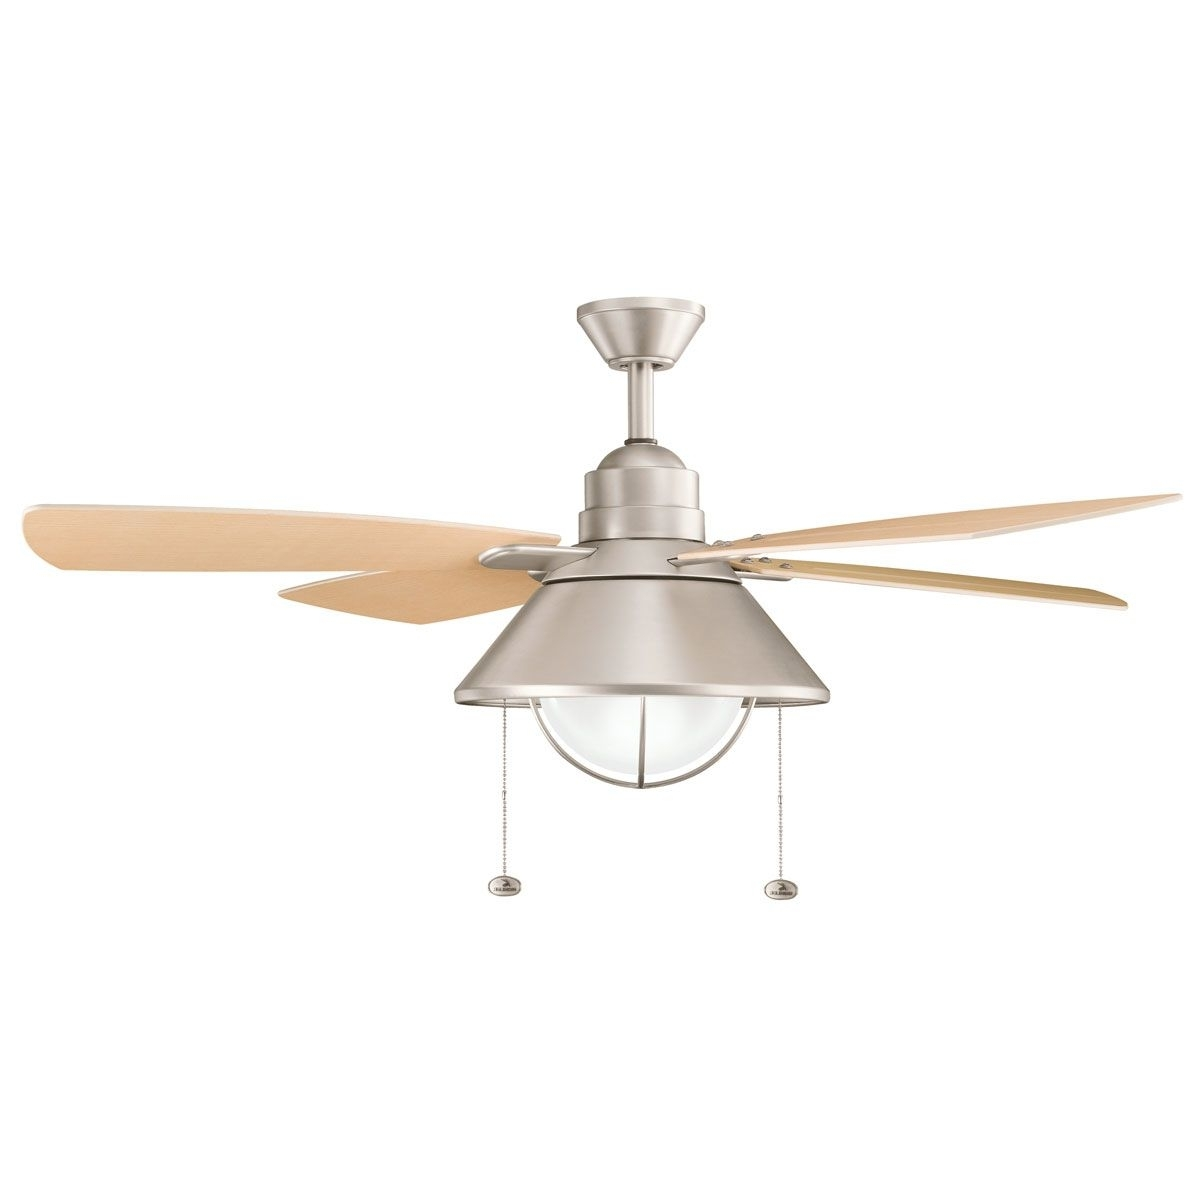 Well Known Kichler Fans Seaside Ceiling Fan In Brushed Nickel (View 17 of 20)